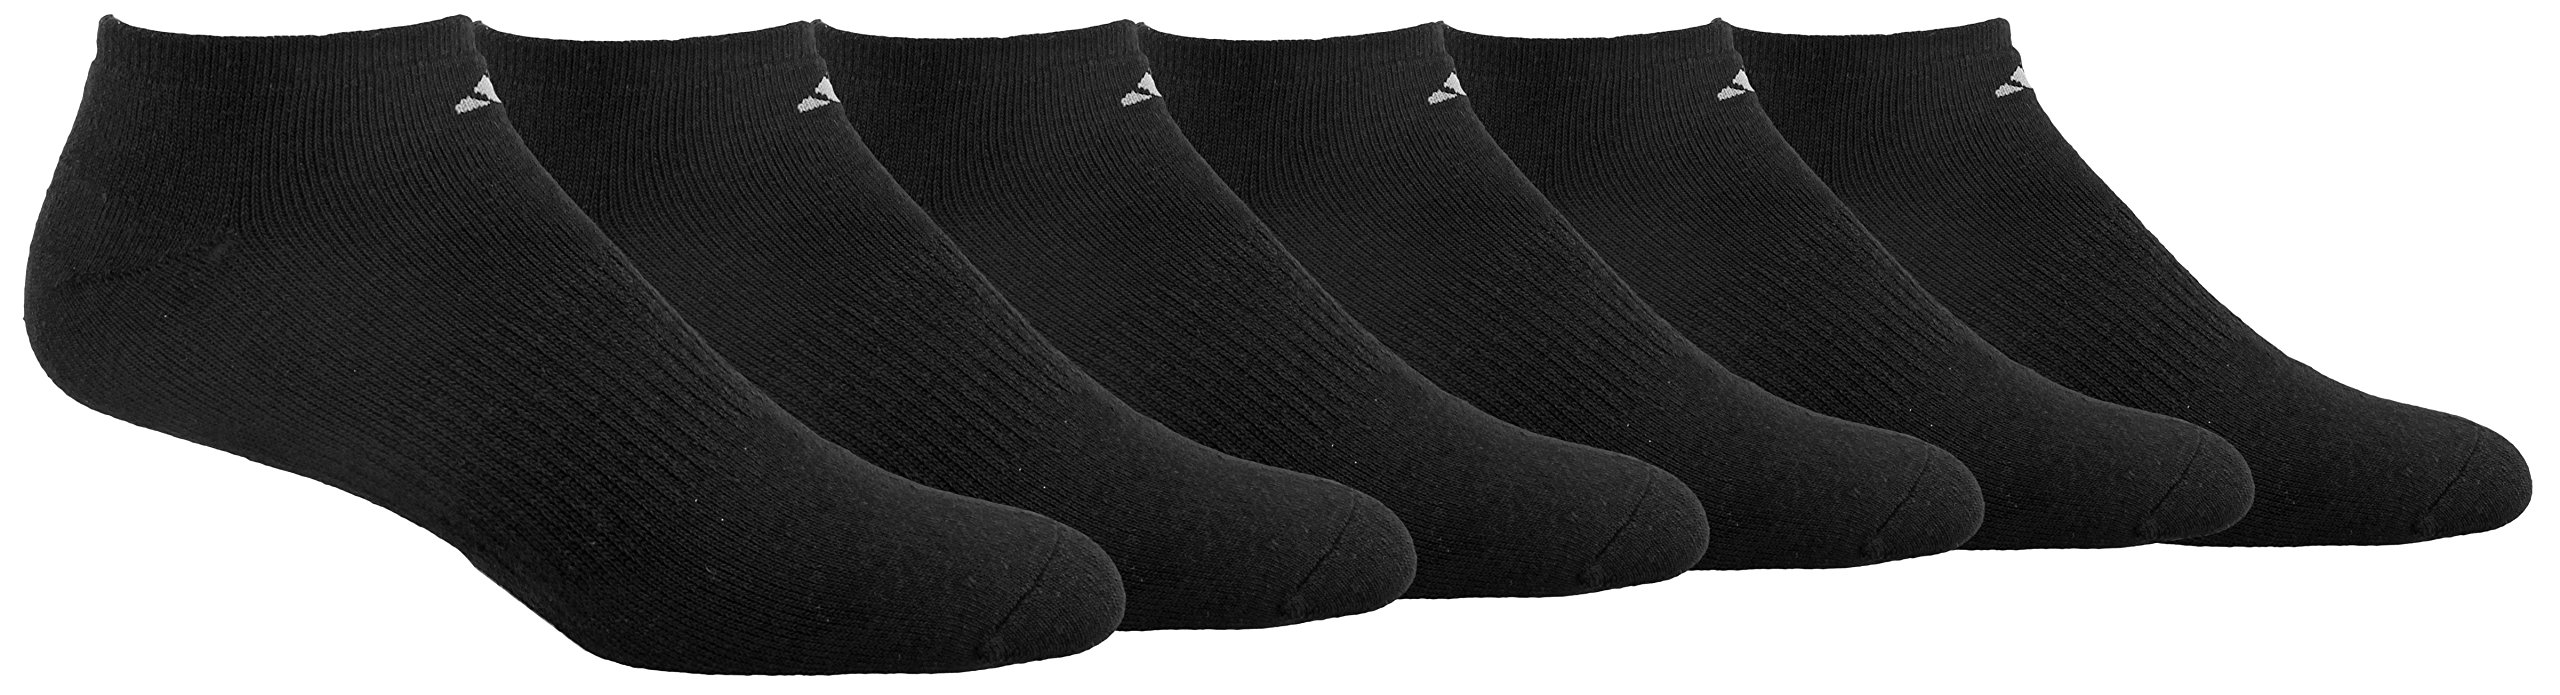 adidas Men's Cushioned Athletic No Show Socks (6-Pack)